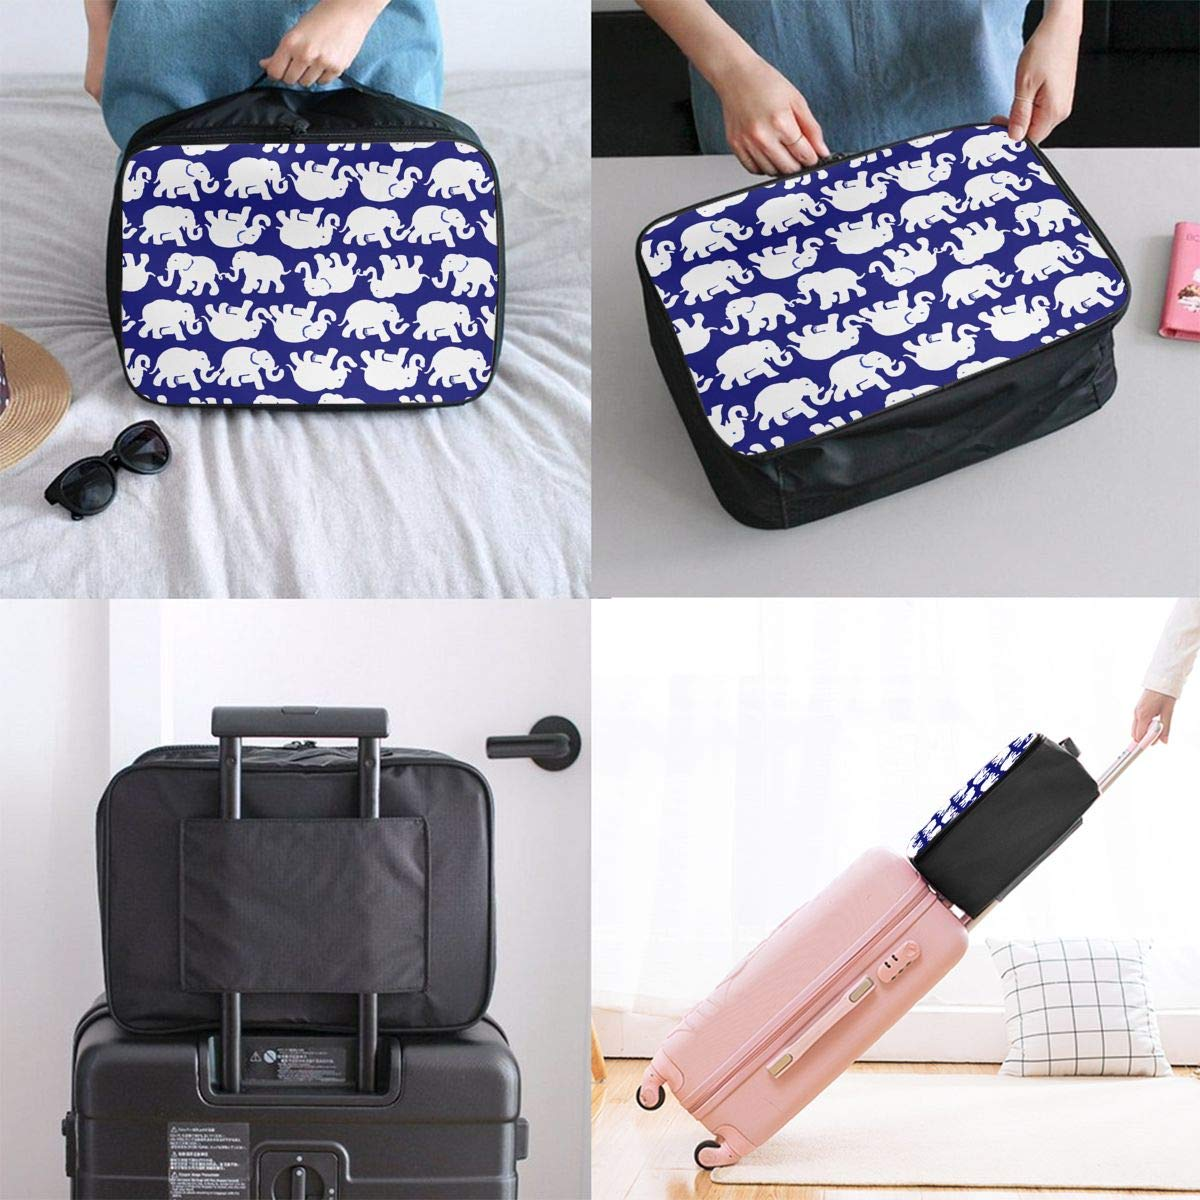 Navy Tusk In Sun Elephant Large Capacity Portable Weekend Bag Overnight Tote Bag Luggage Duffel Bag for Women Girls